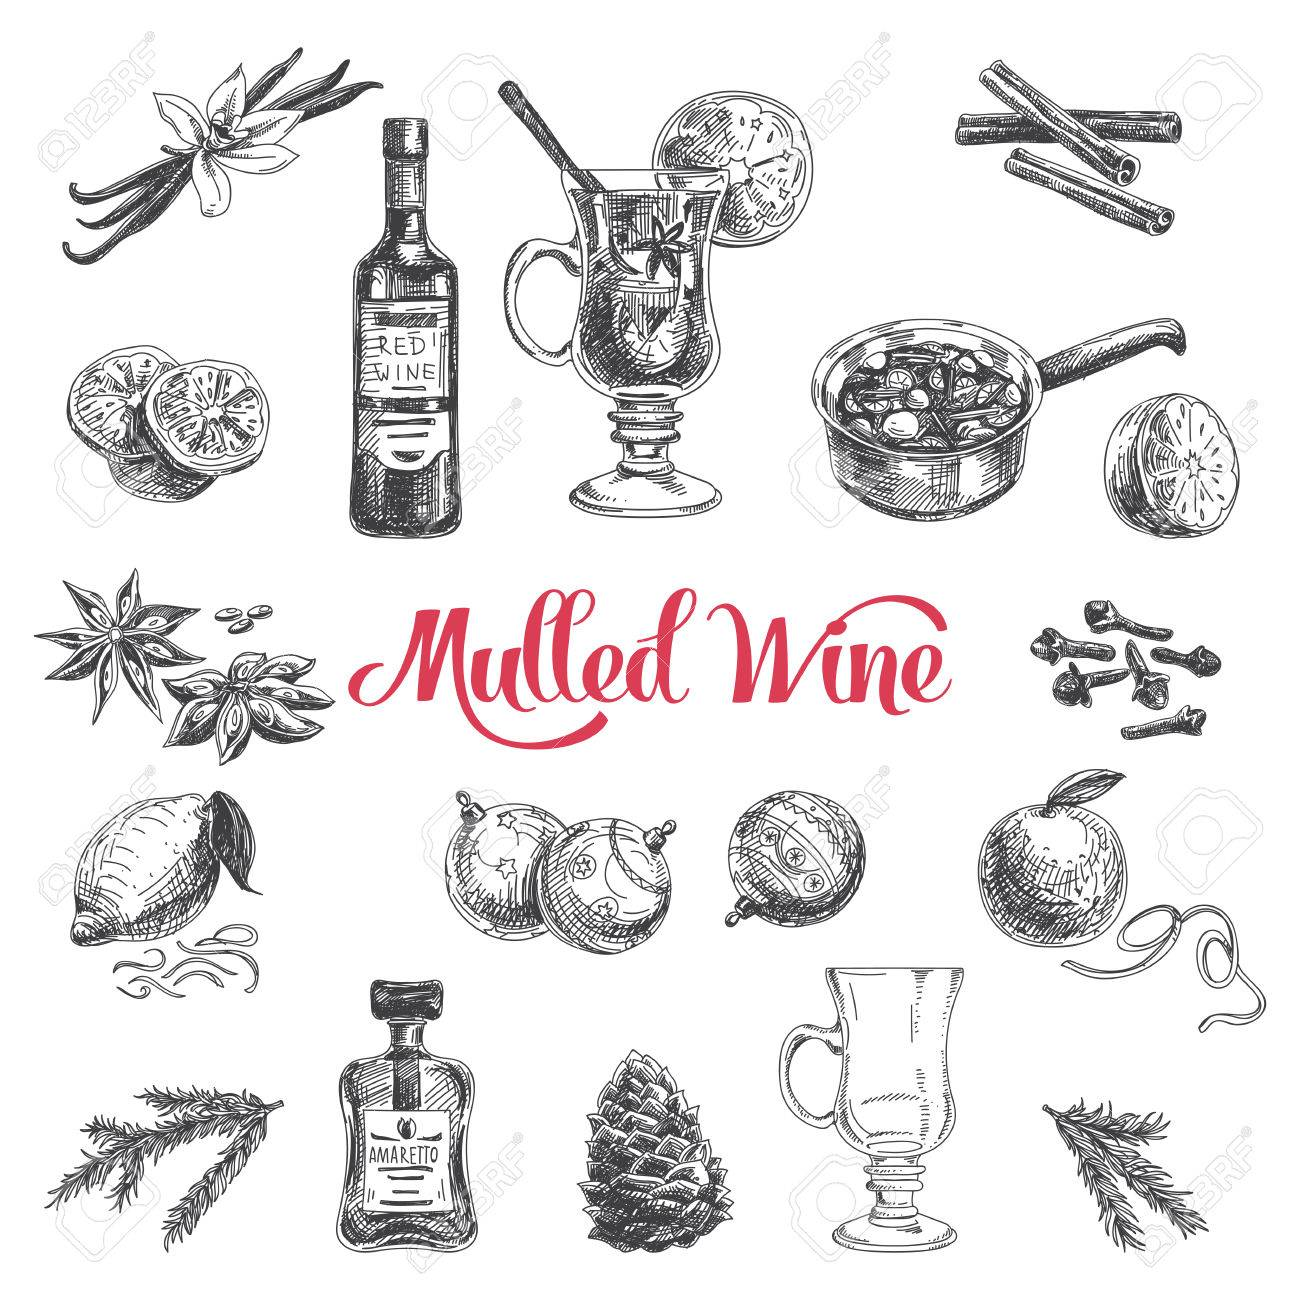 Vector hand drawn illustration with mulled wine. Sketch. - 49810252